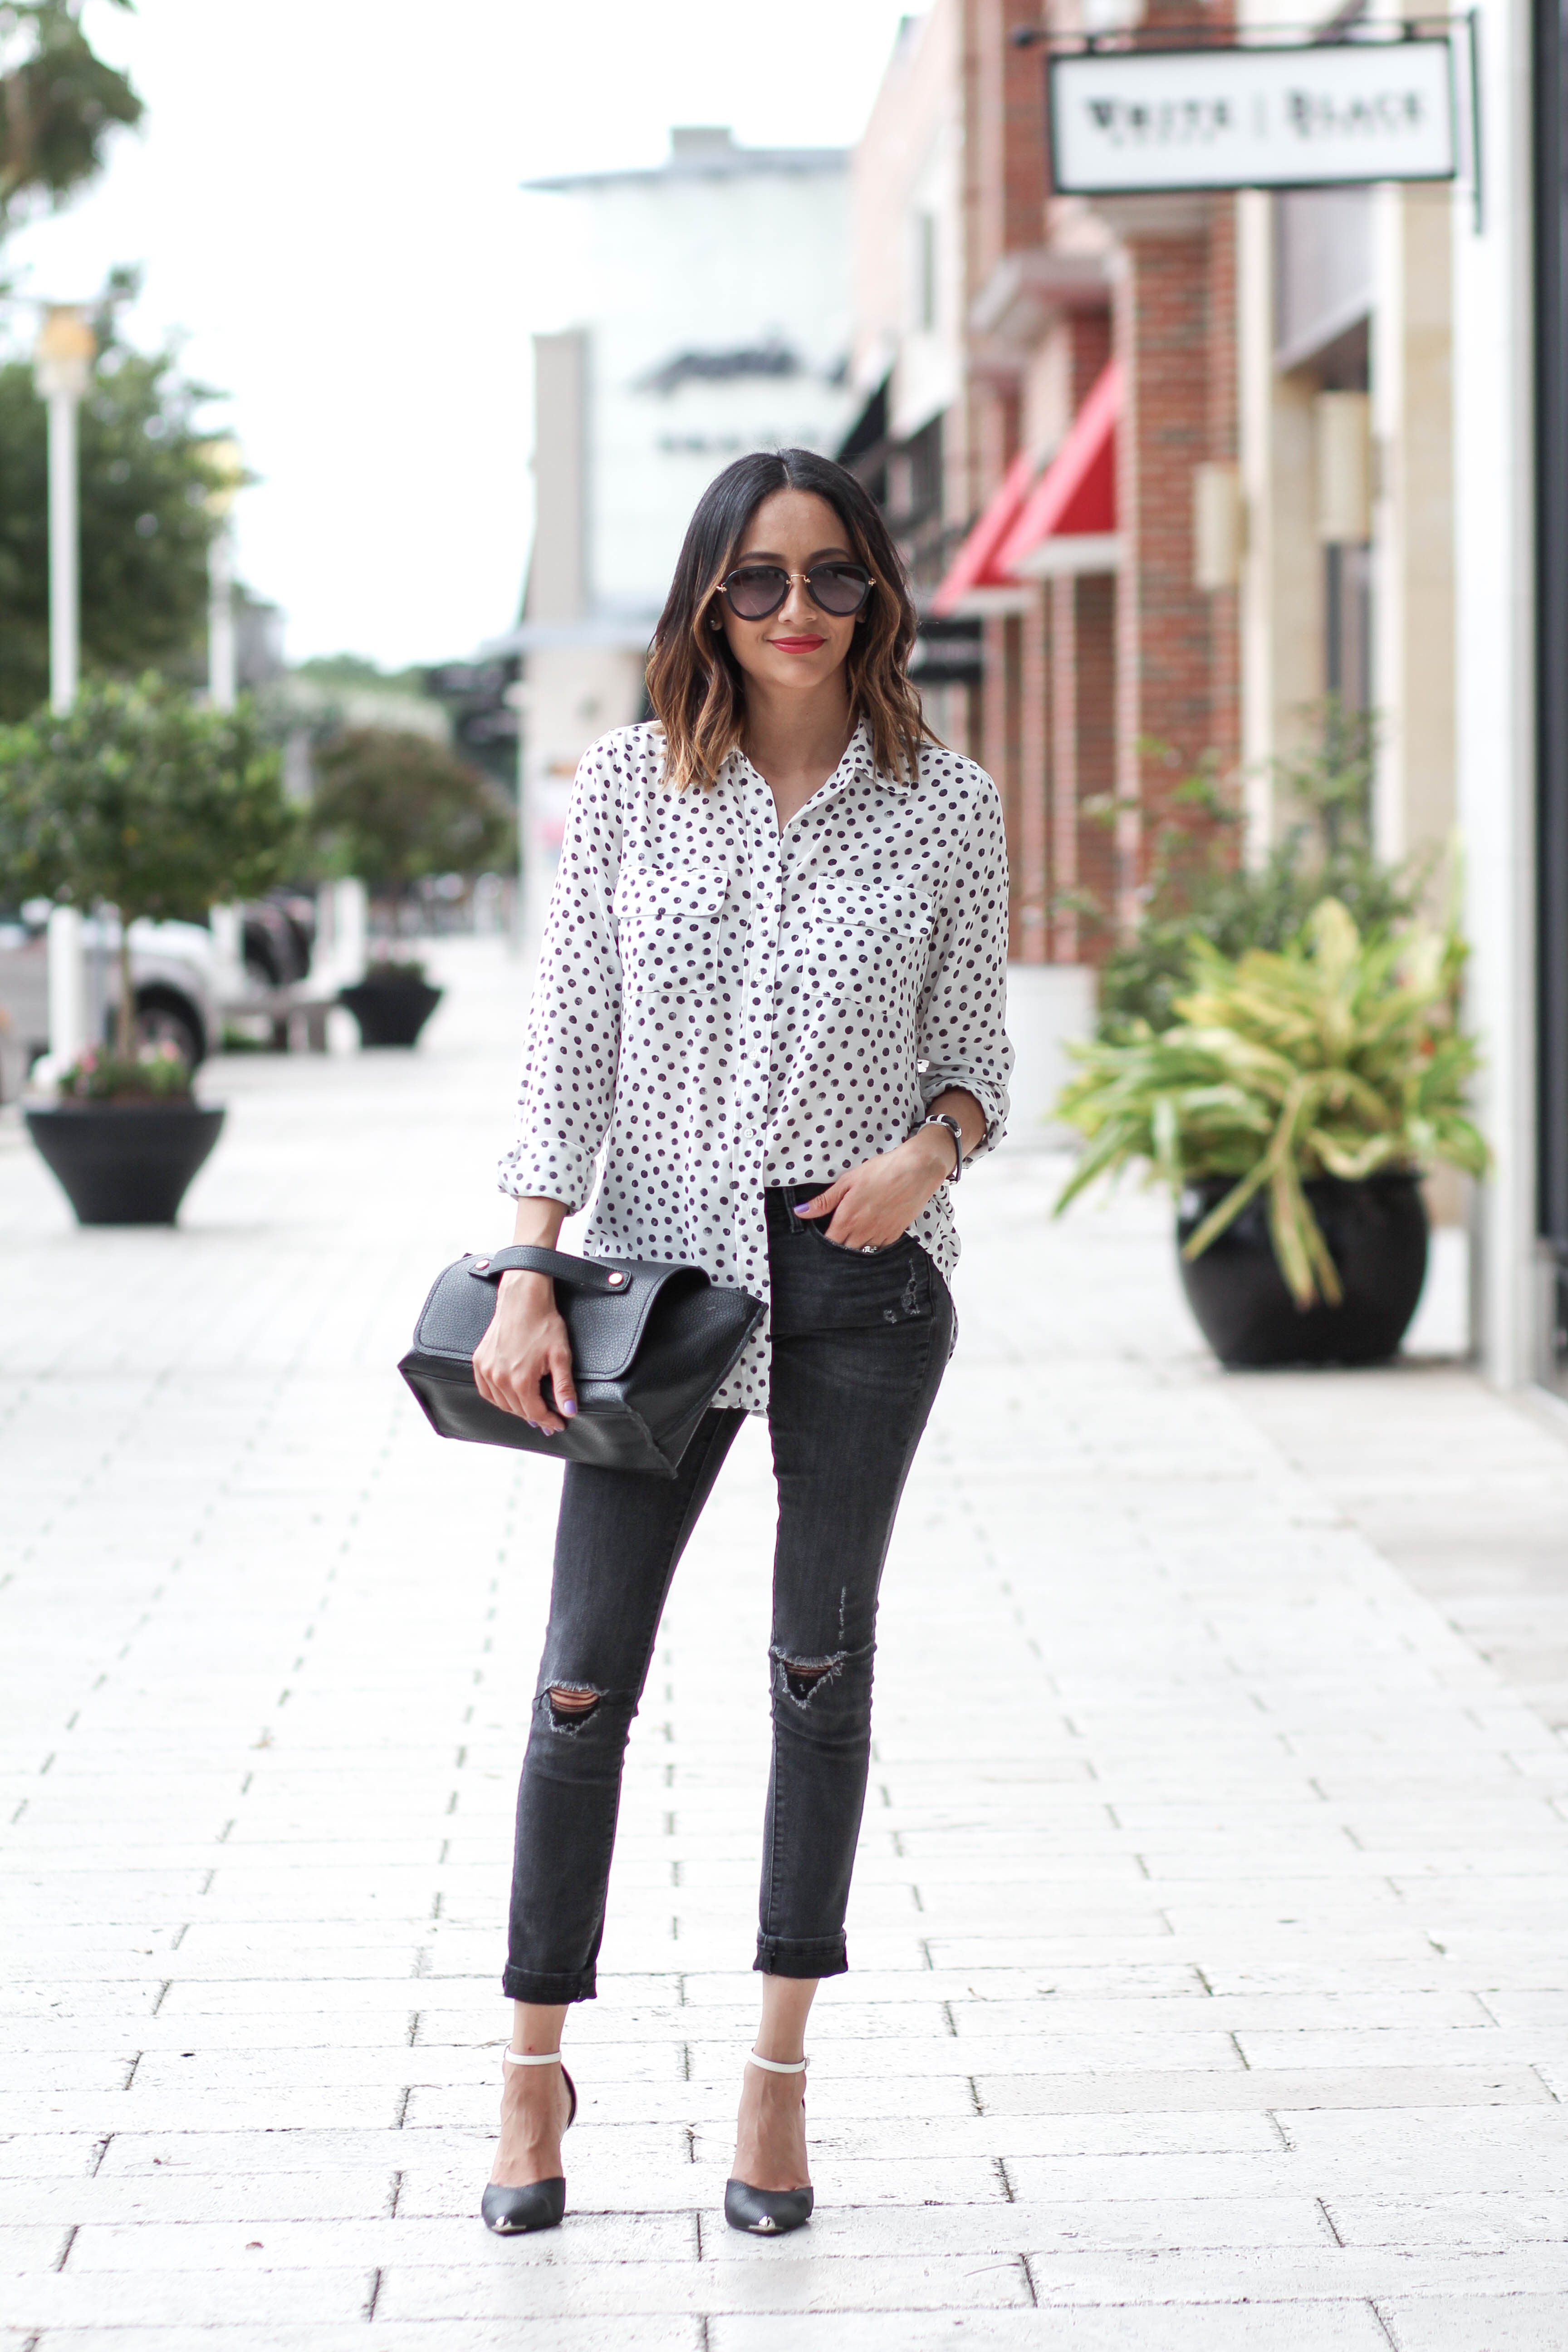 Polka Dotted Top and Skinny Jeans | Casual Look